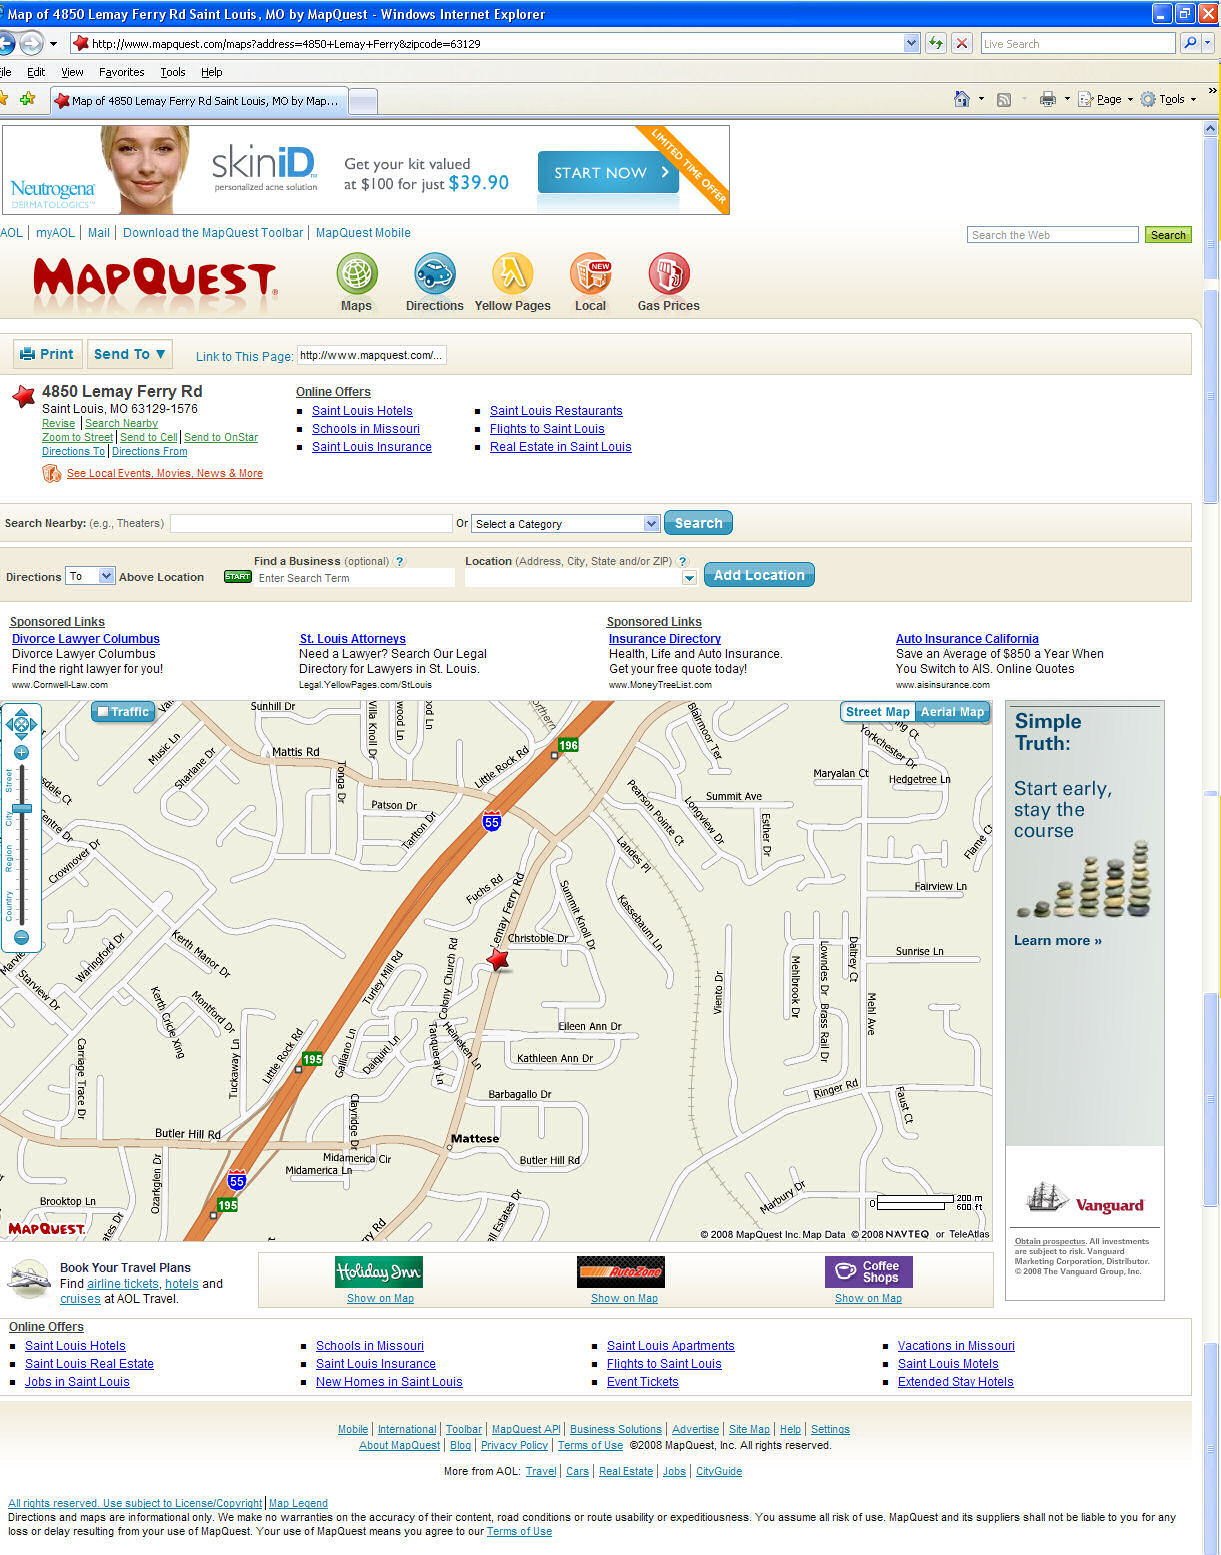 The MapQuest page that doesn't tell you not to use it wrong